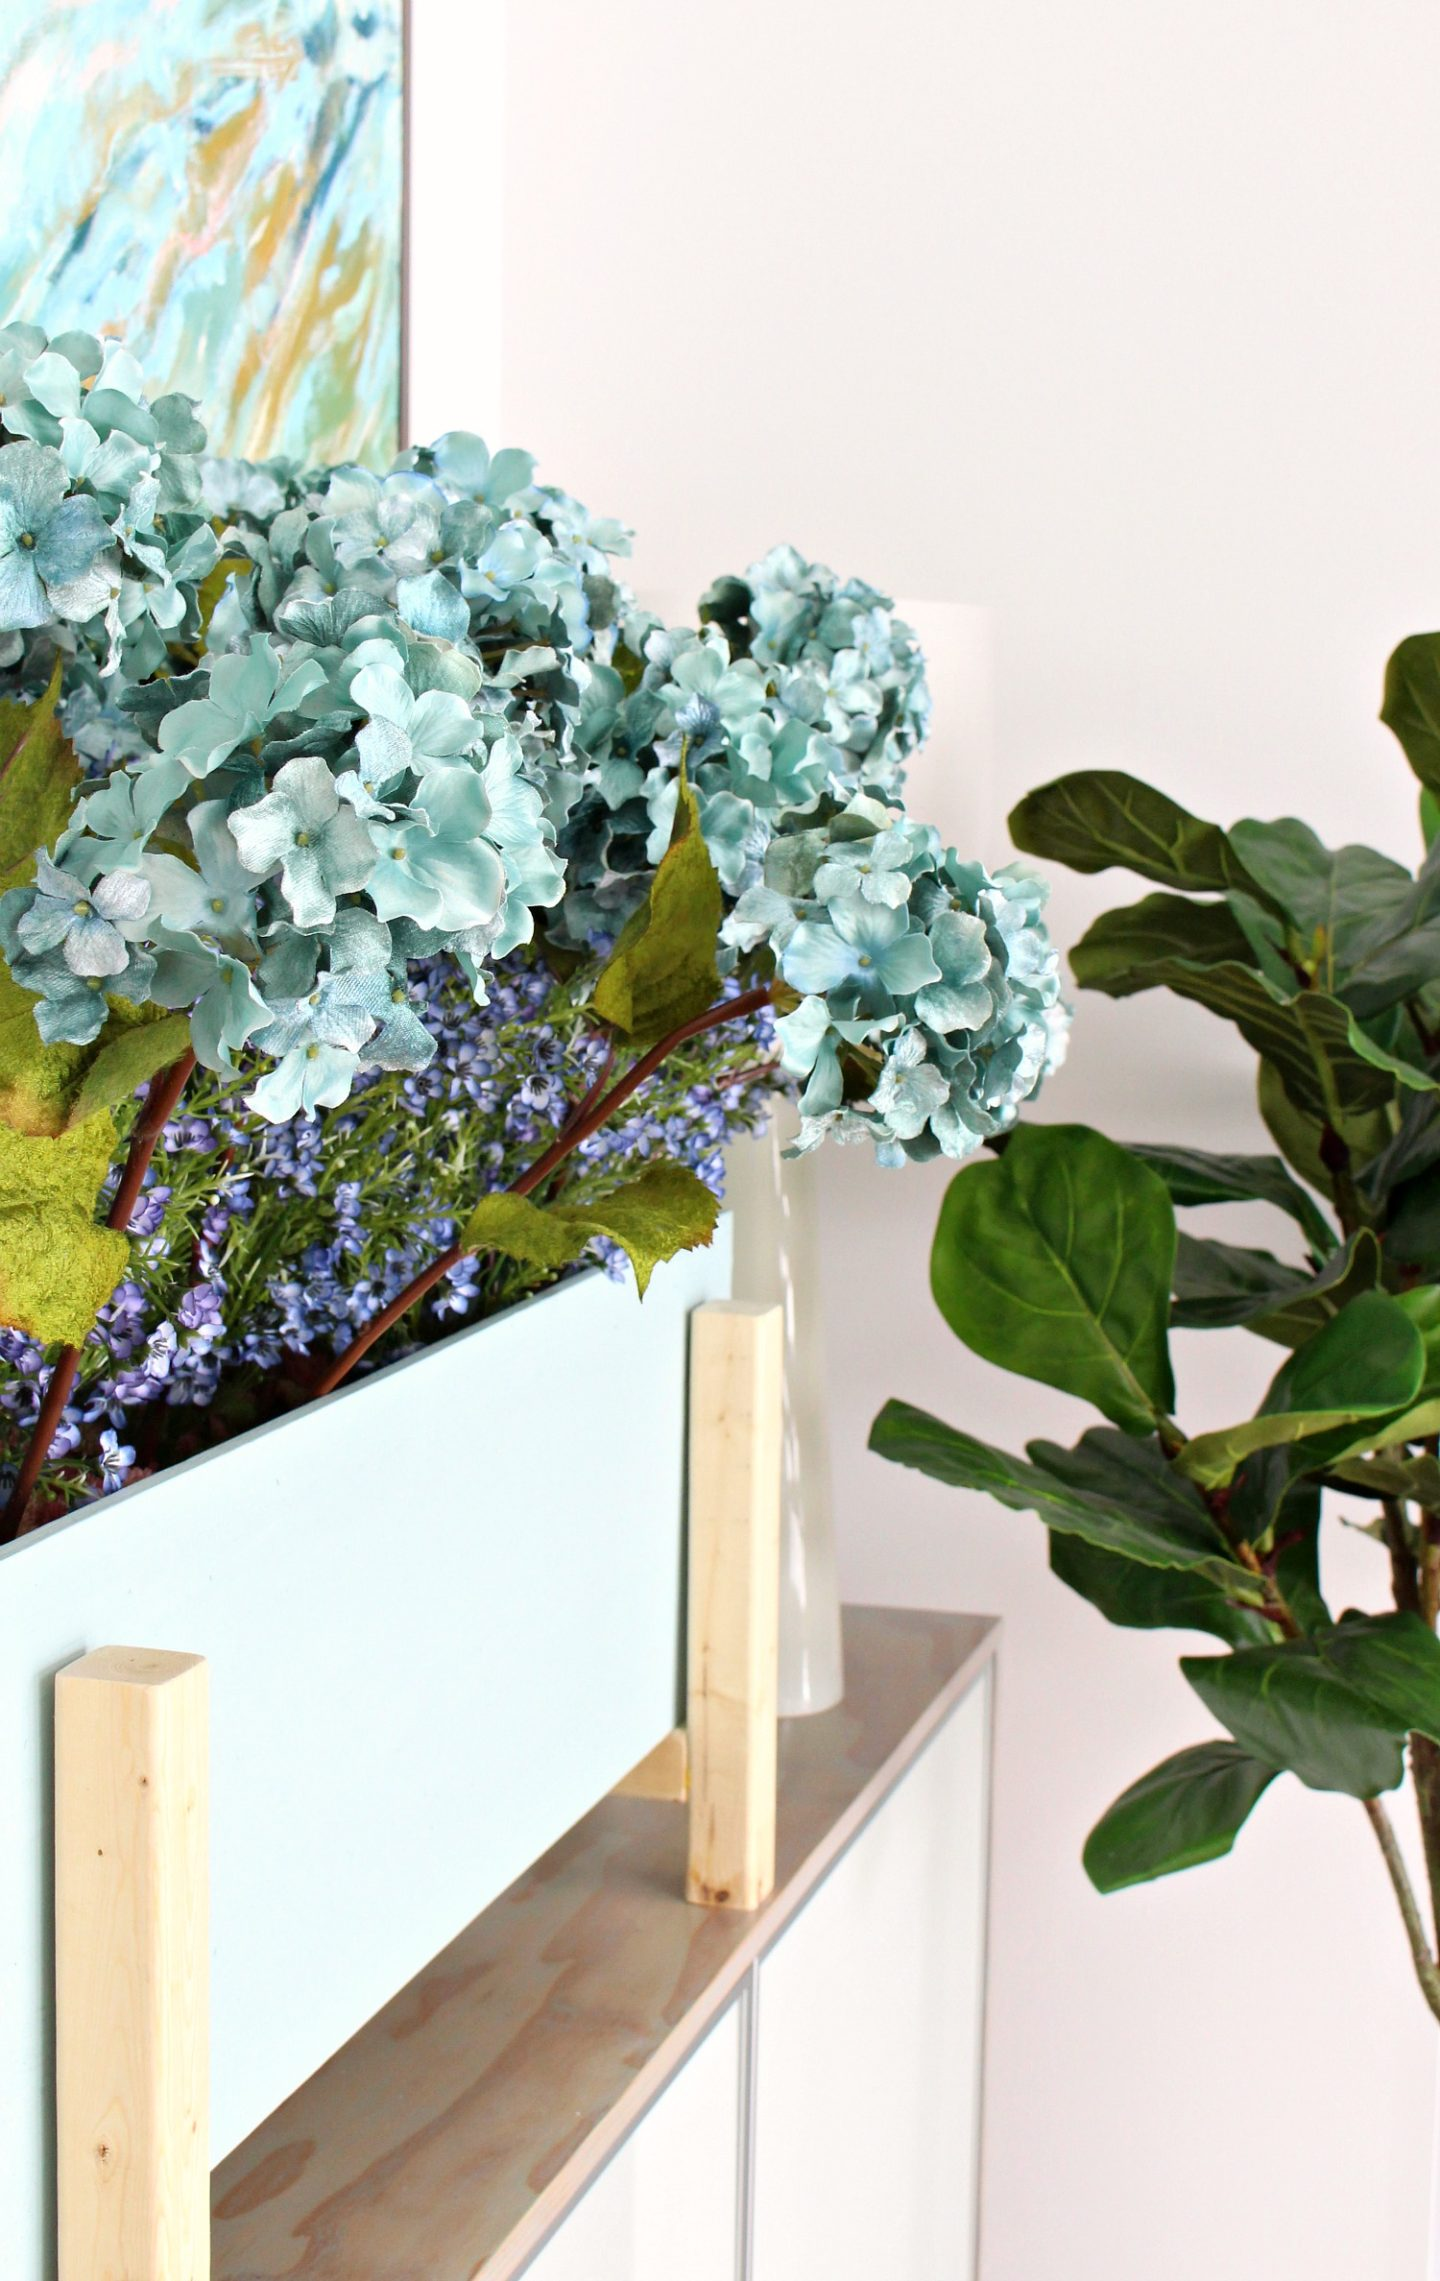 Learn How to Make This Modern DIY Planter Box for Faux Plants with Leftover Plywood and Wood Scraps #diy #homedecor #diyhomedecor #woodworking #plywoodprojects #diyplanter